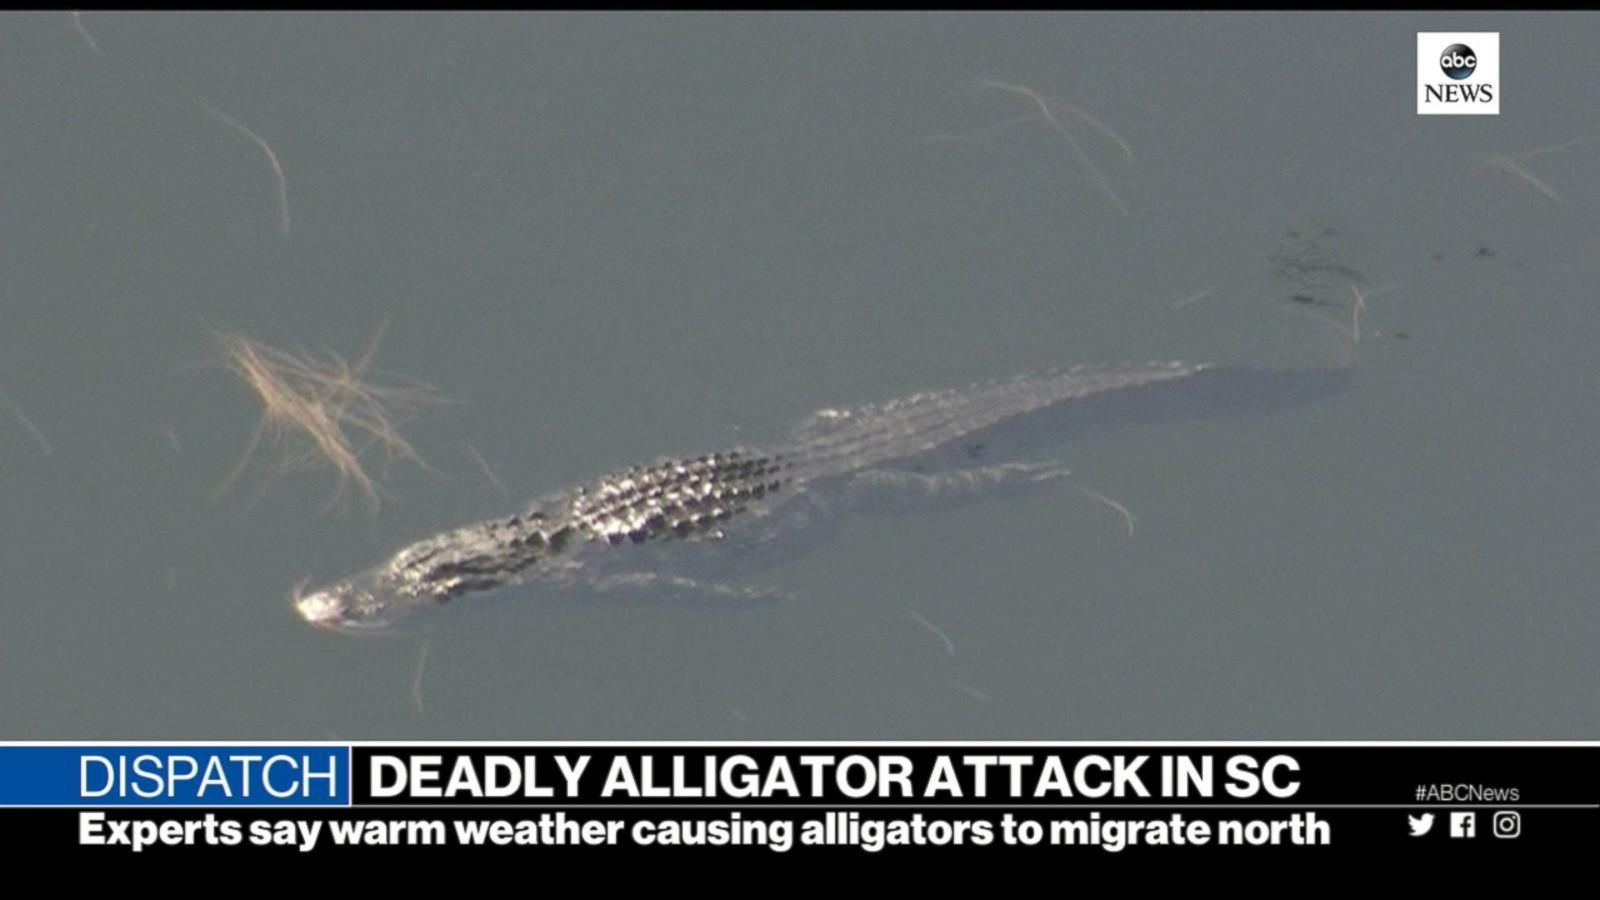 woman killed in apparent alligator attack would be first in